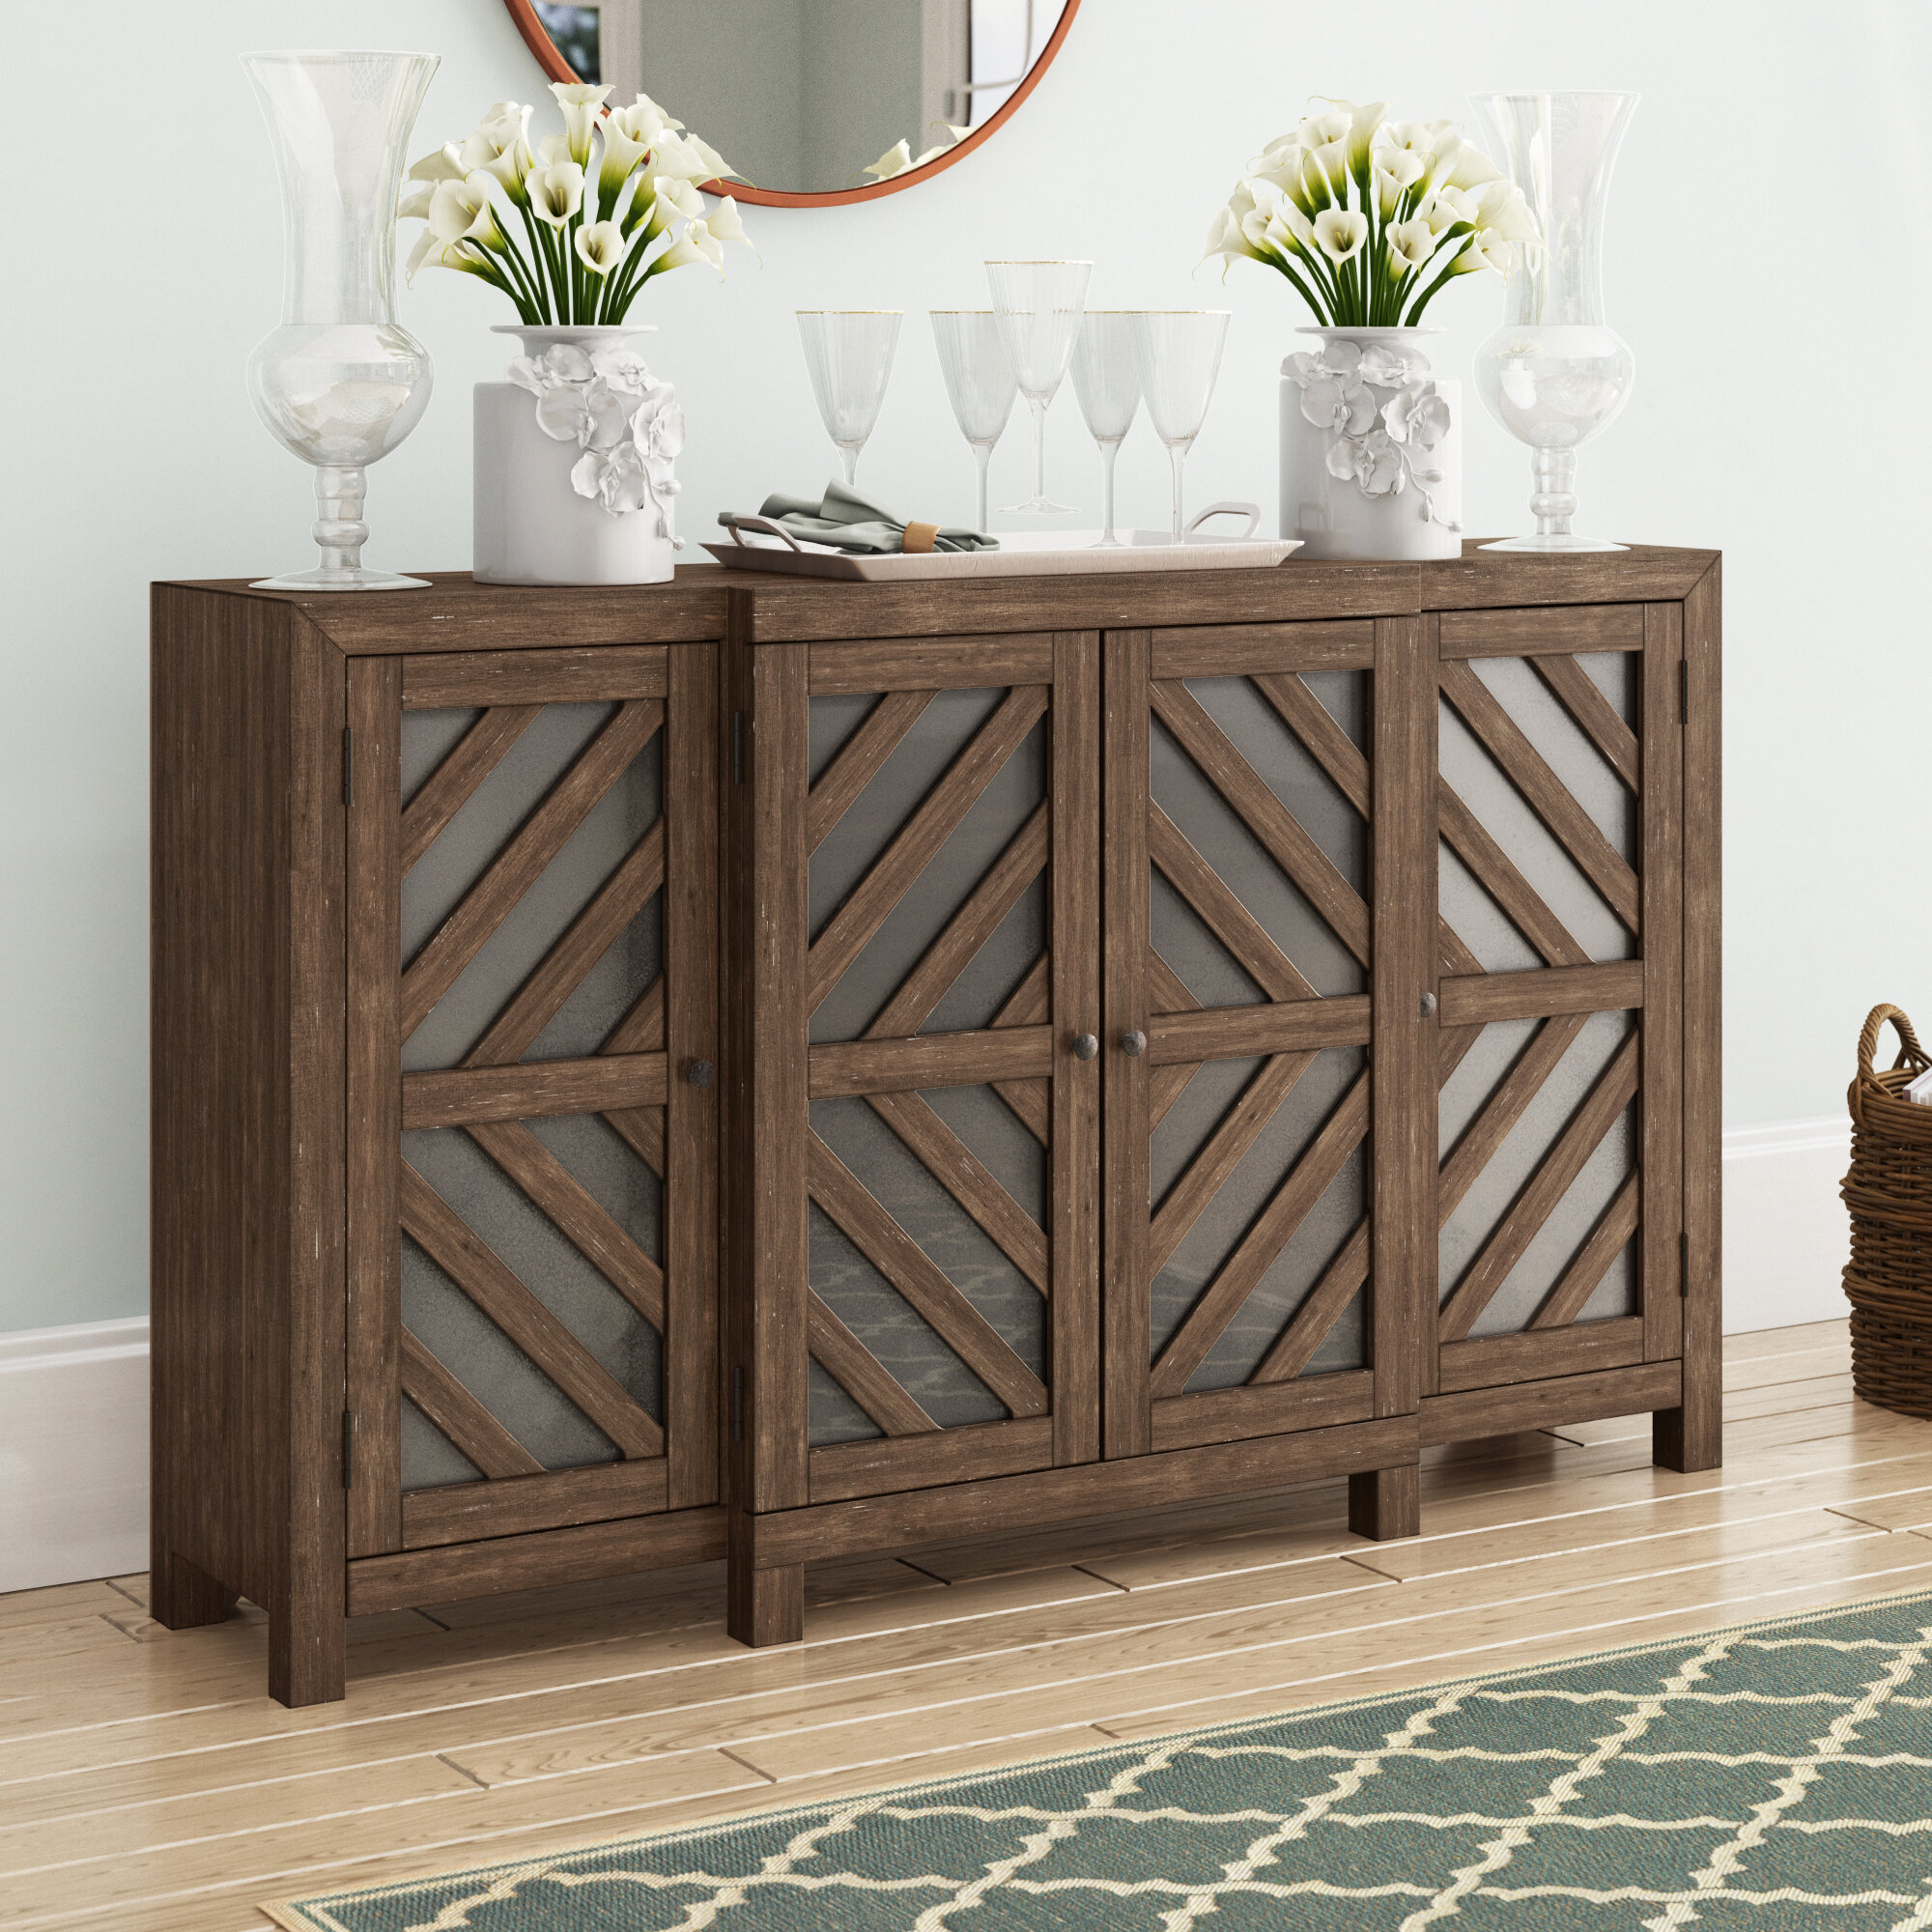 70 Inch Credenza You'll Love In 2019 | Wayfair Throughout Candace Door Credenzas (View 5 of 30)